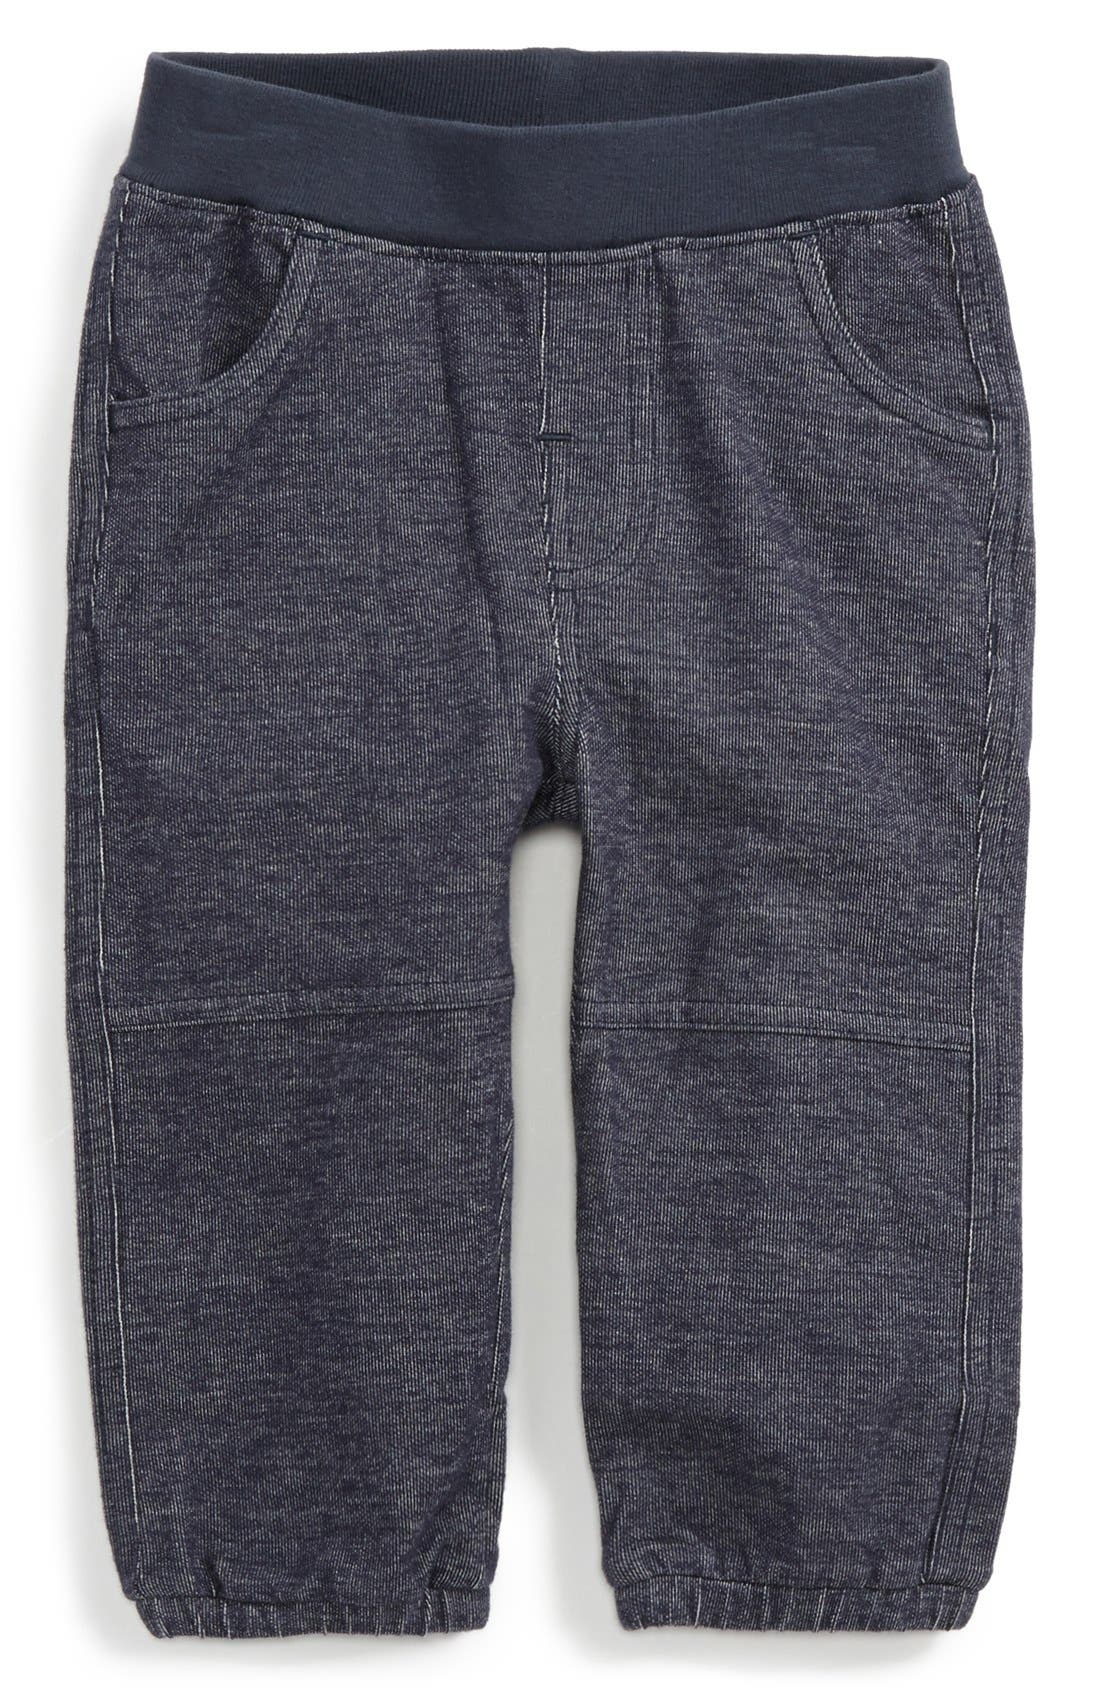 Denim Look Sweatpants,                         Main,                         color, Indigo